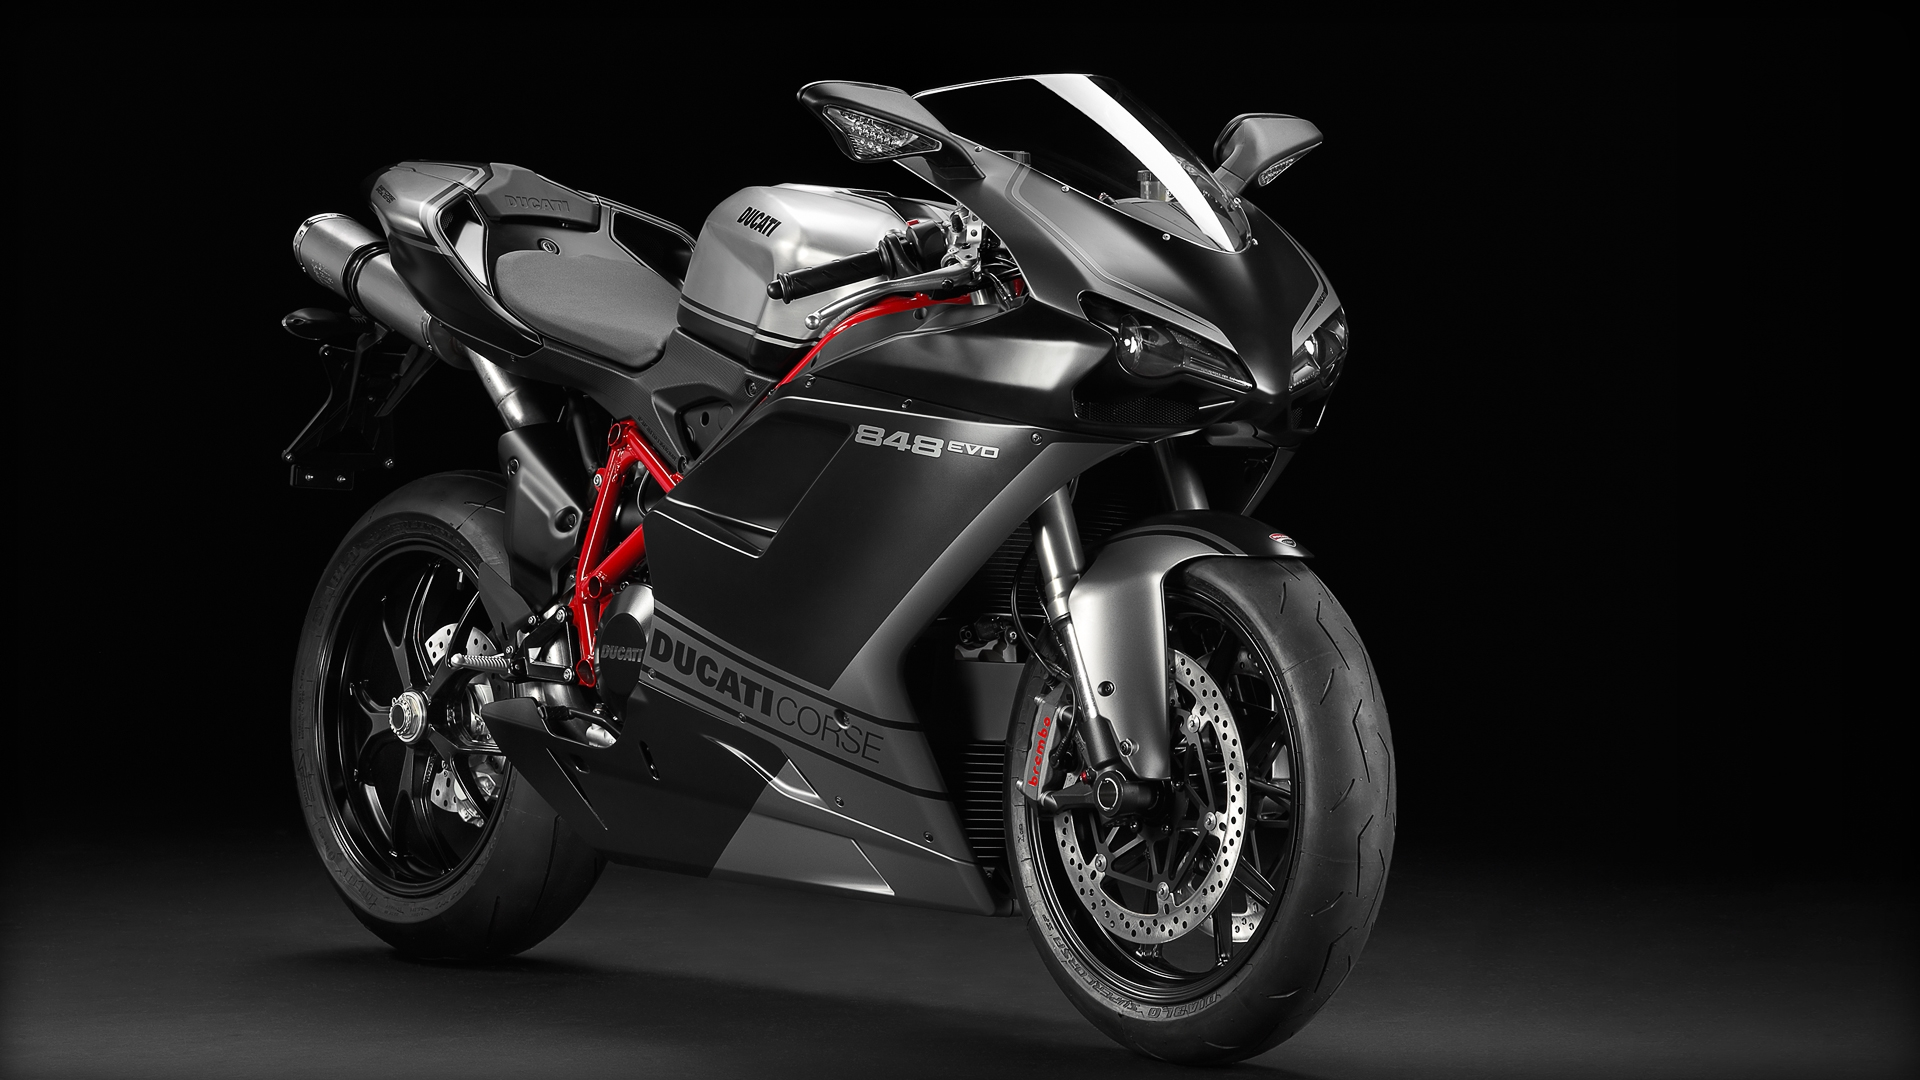 2013 Ducati Superbike 848 EVO Corse SE | Top Speed